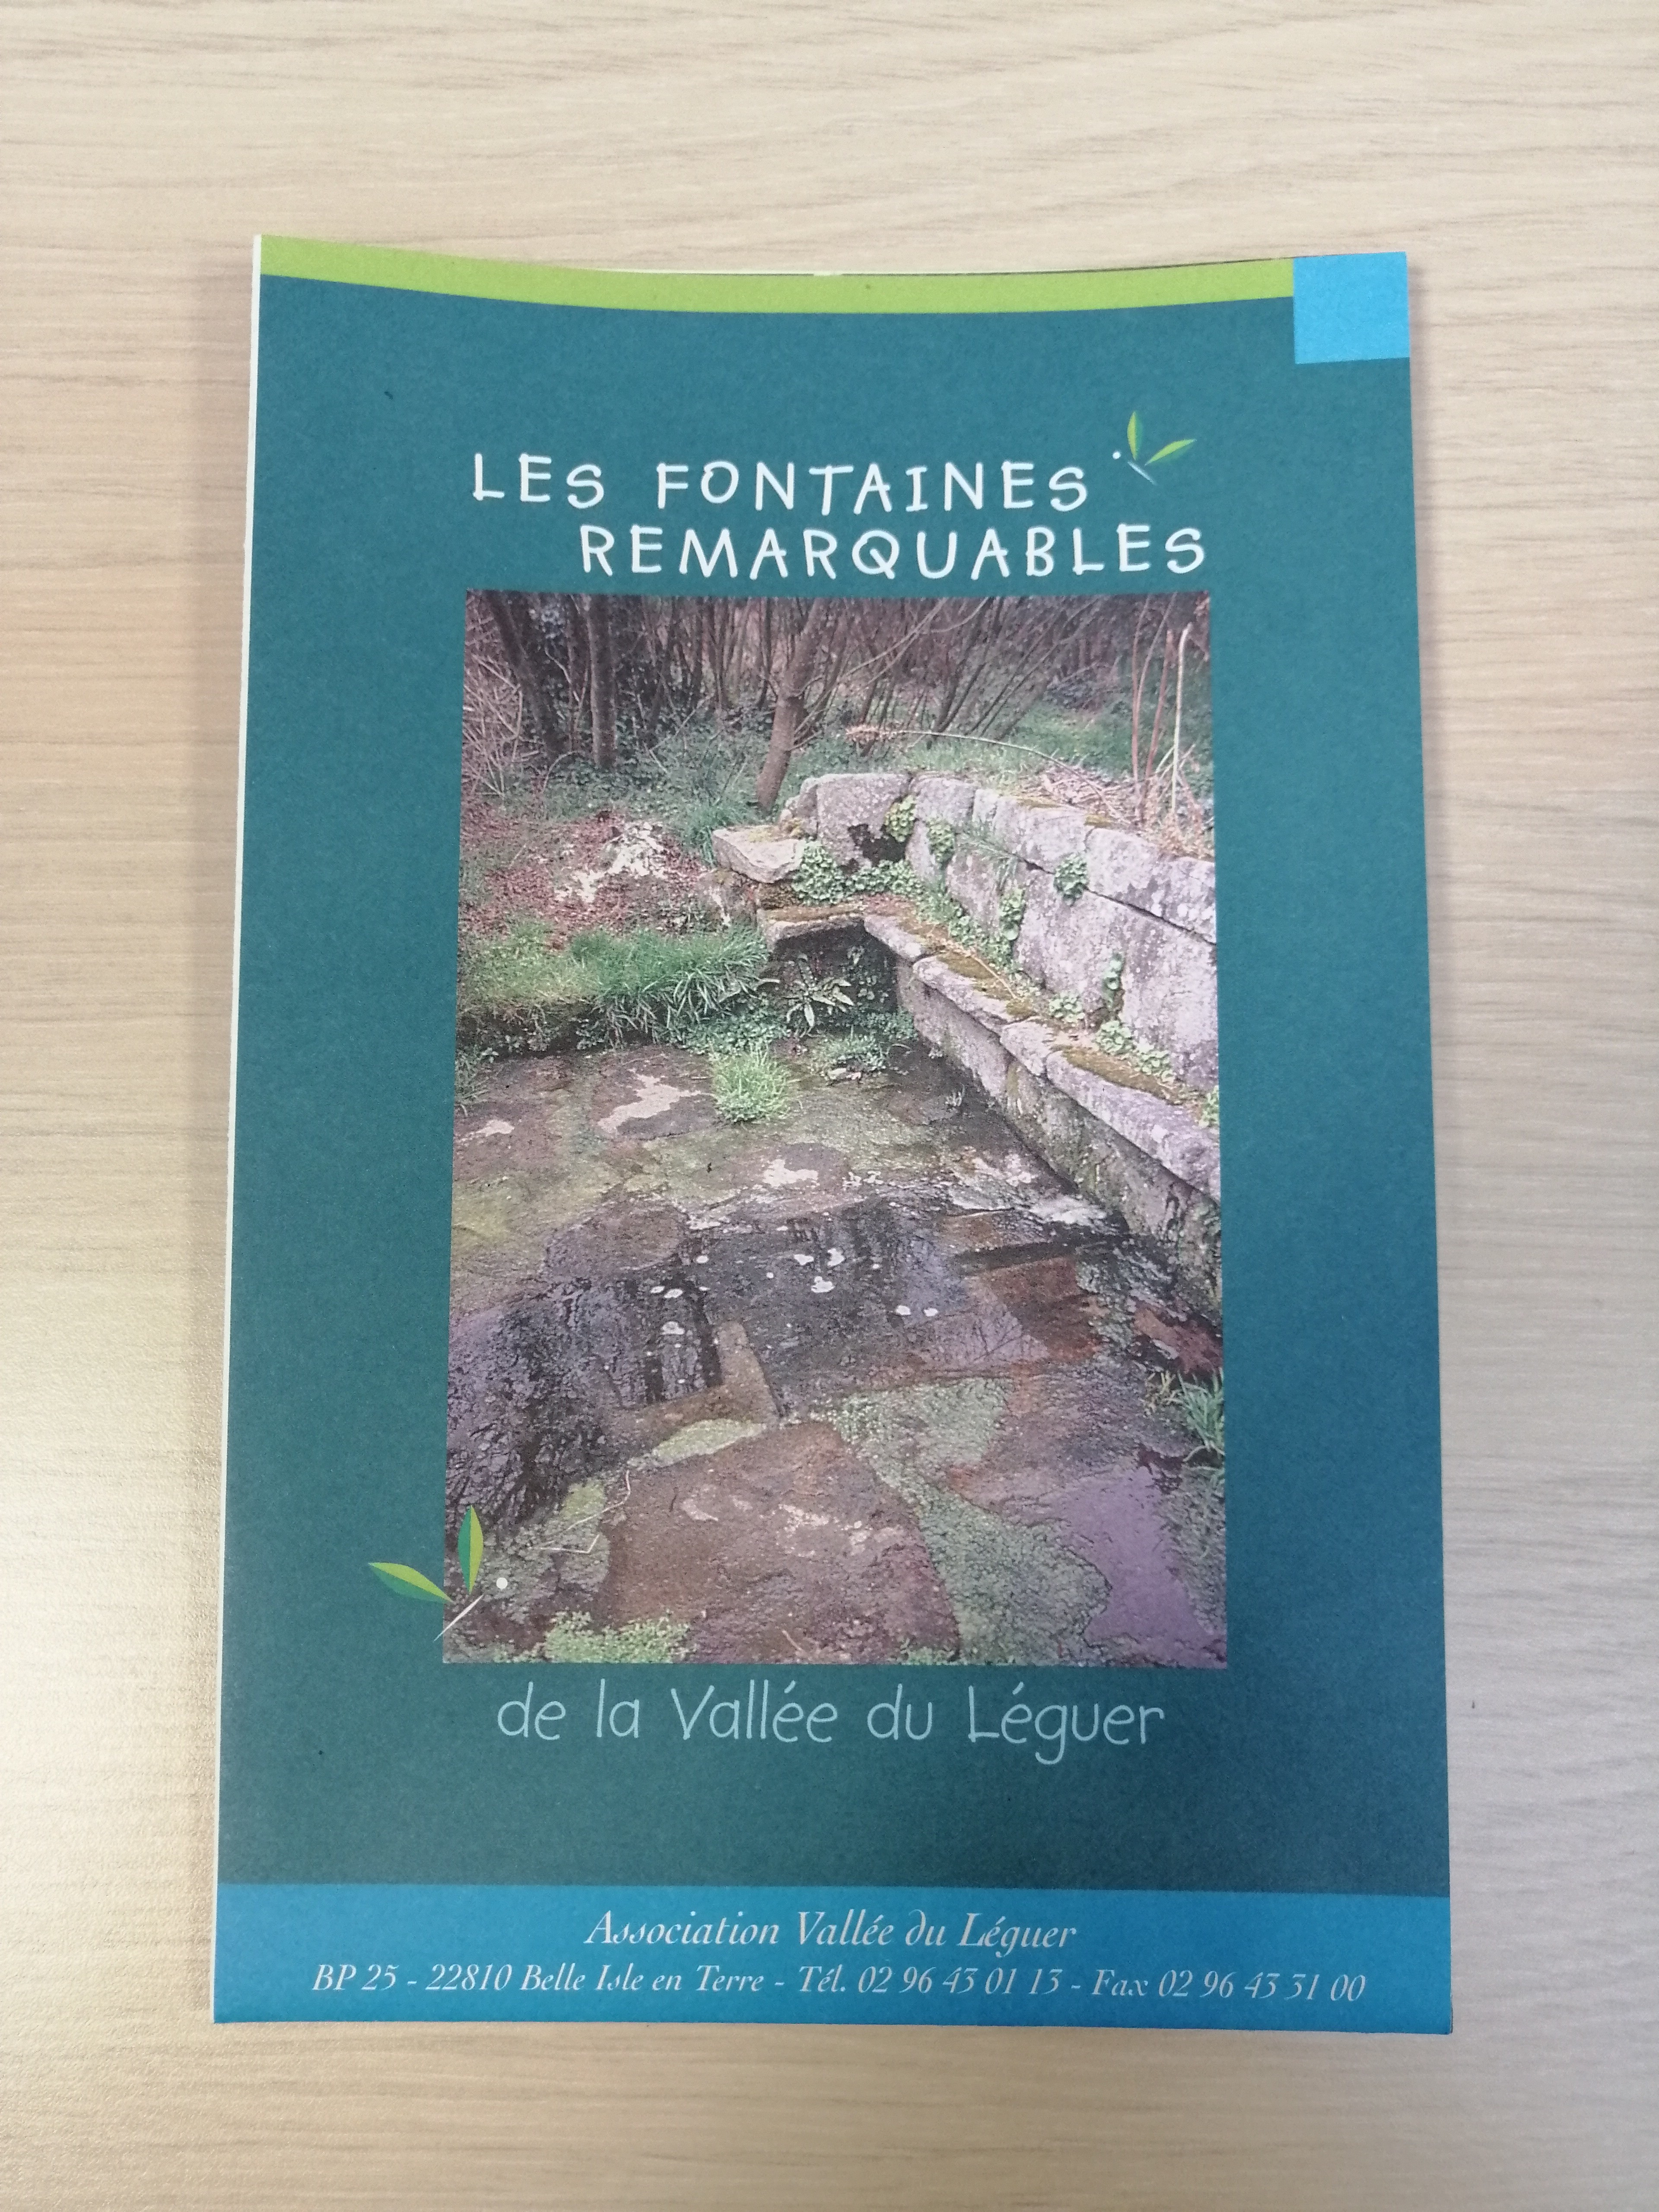 02 - Les fontaines remarquables